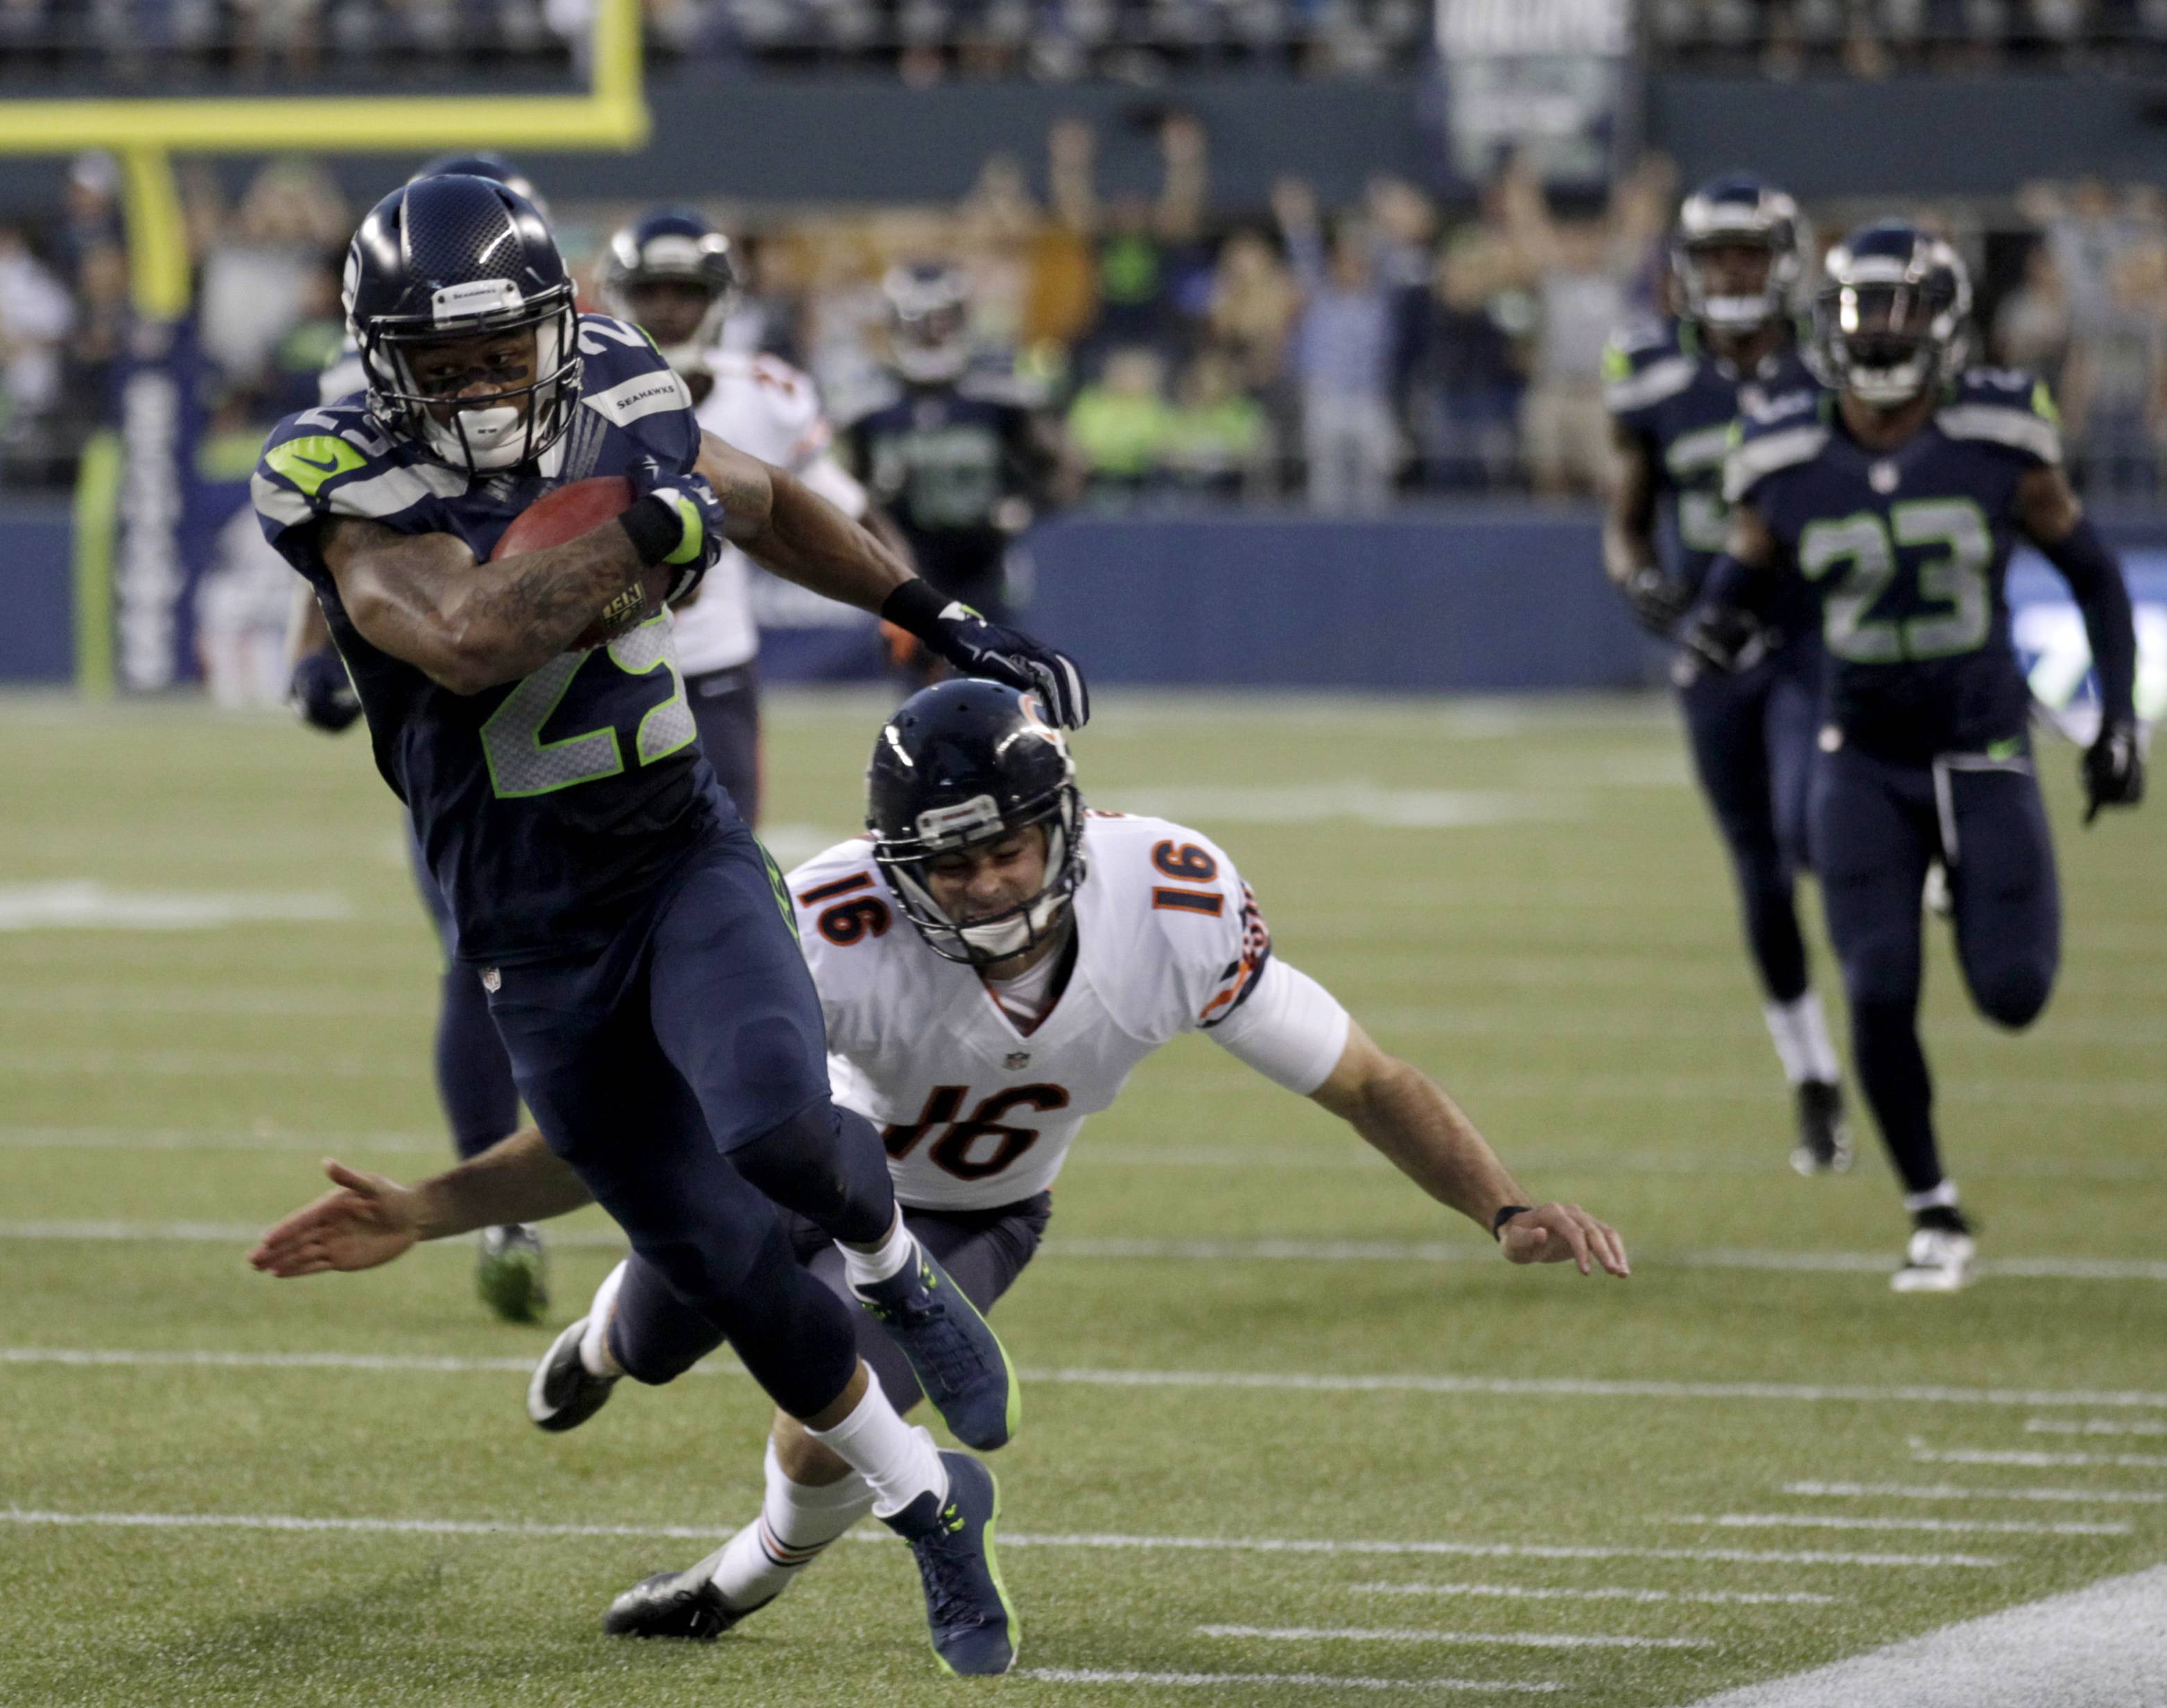 The Seahawks' Earl Thomas, left, nearly returns a punt for a touchdown Friday night before Bears punter Pat O'Donnell makes the tackle.